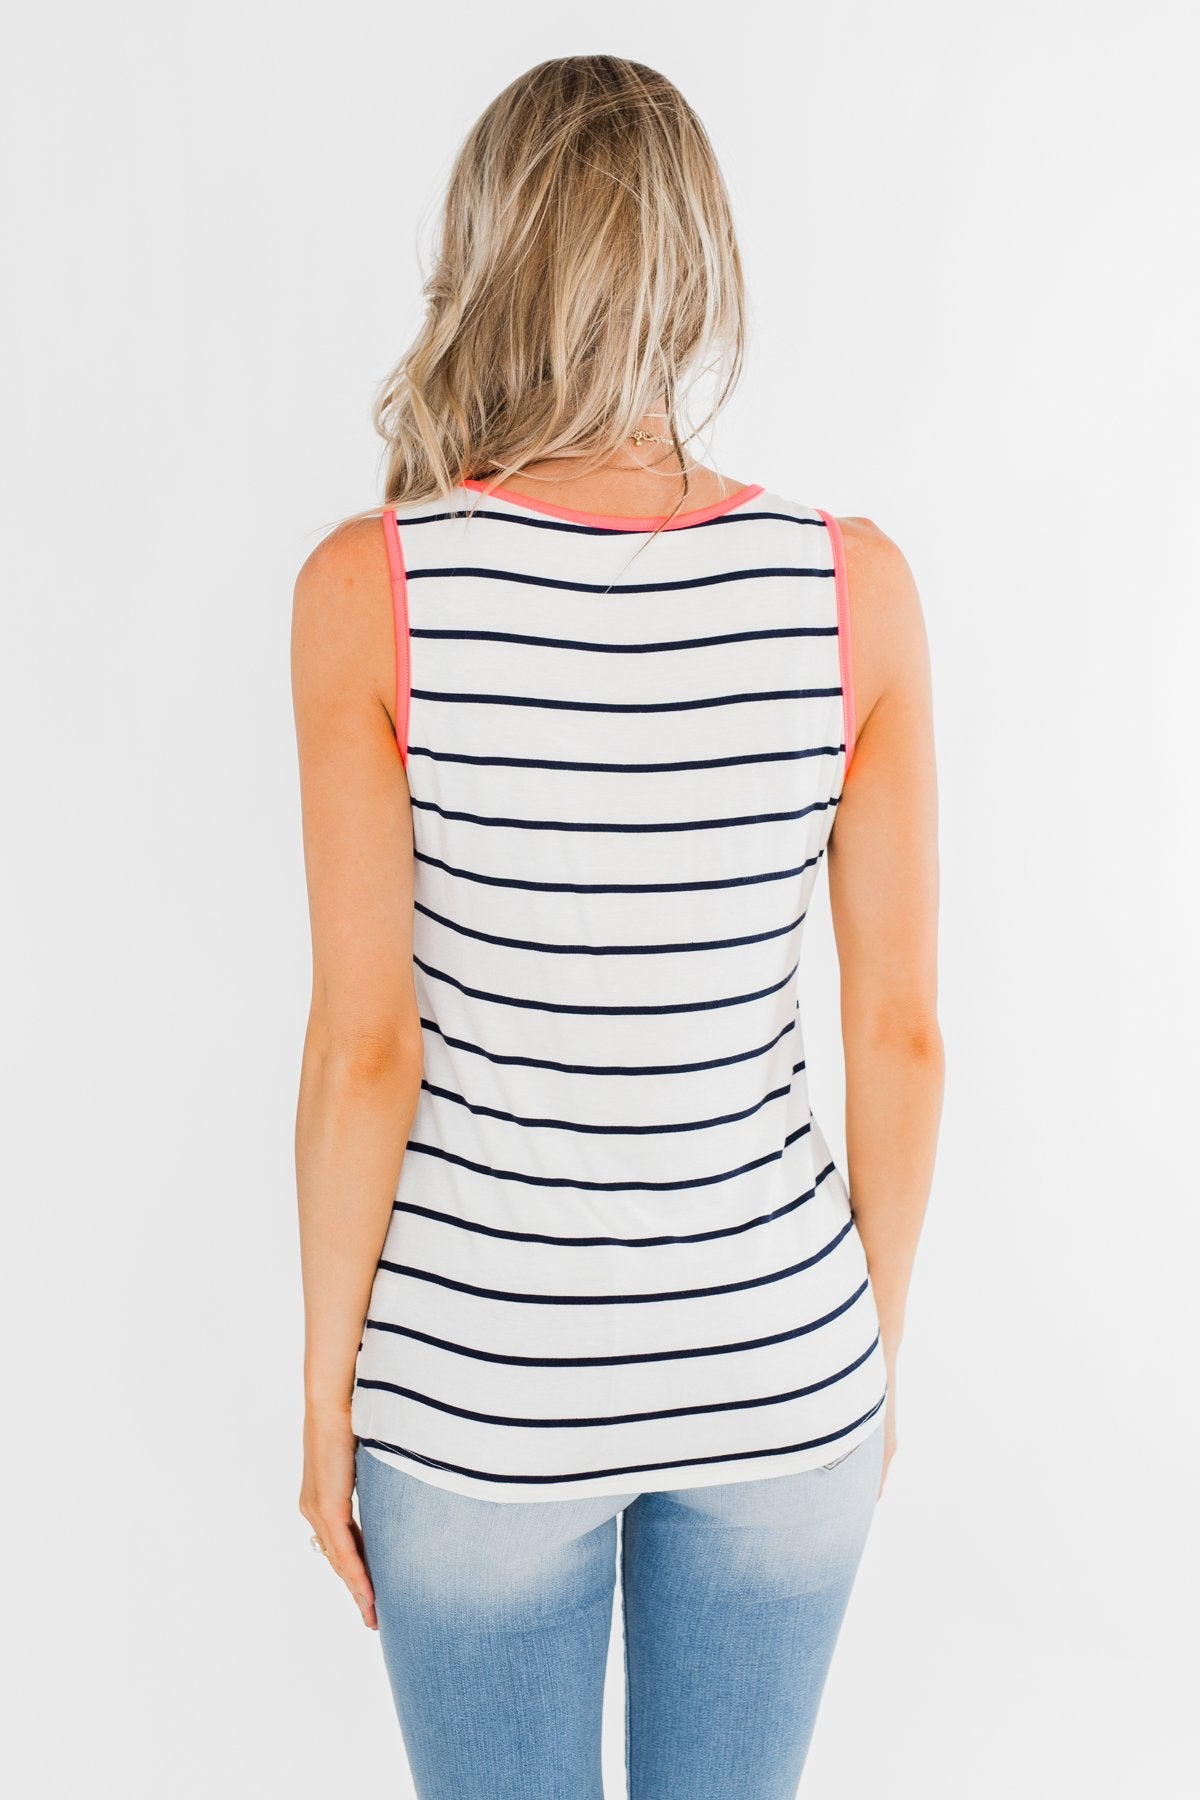 Only For Tonight Striped Tank Top- Navy & Pink